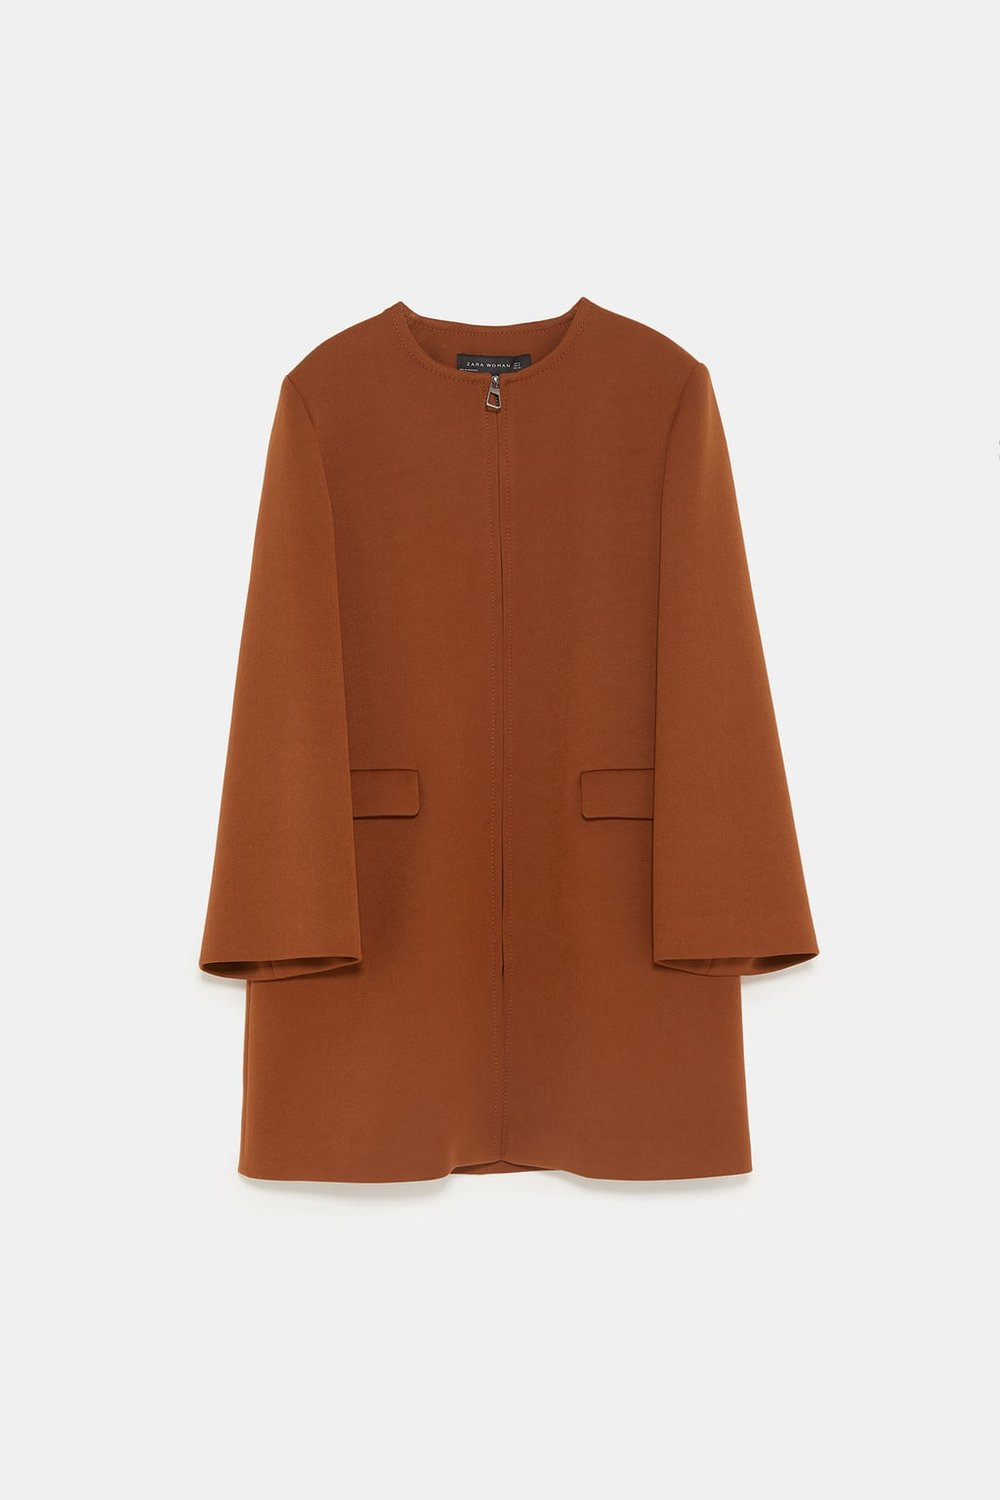 Zara Zippered Topper, $129